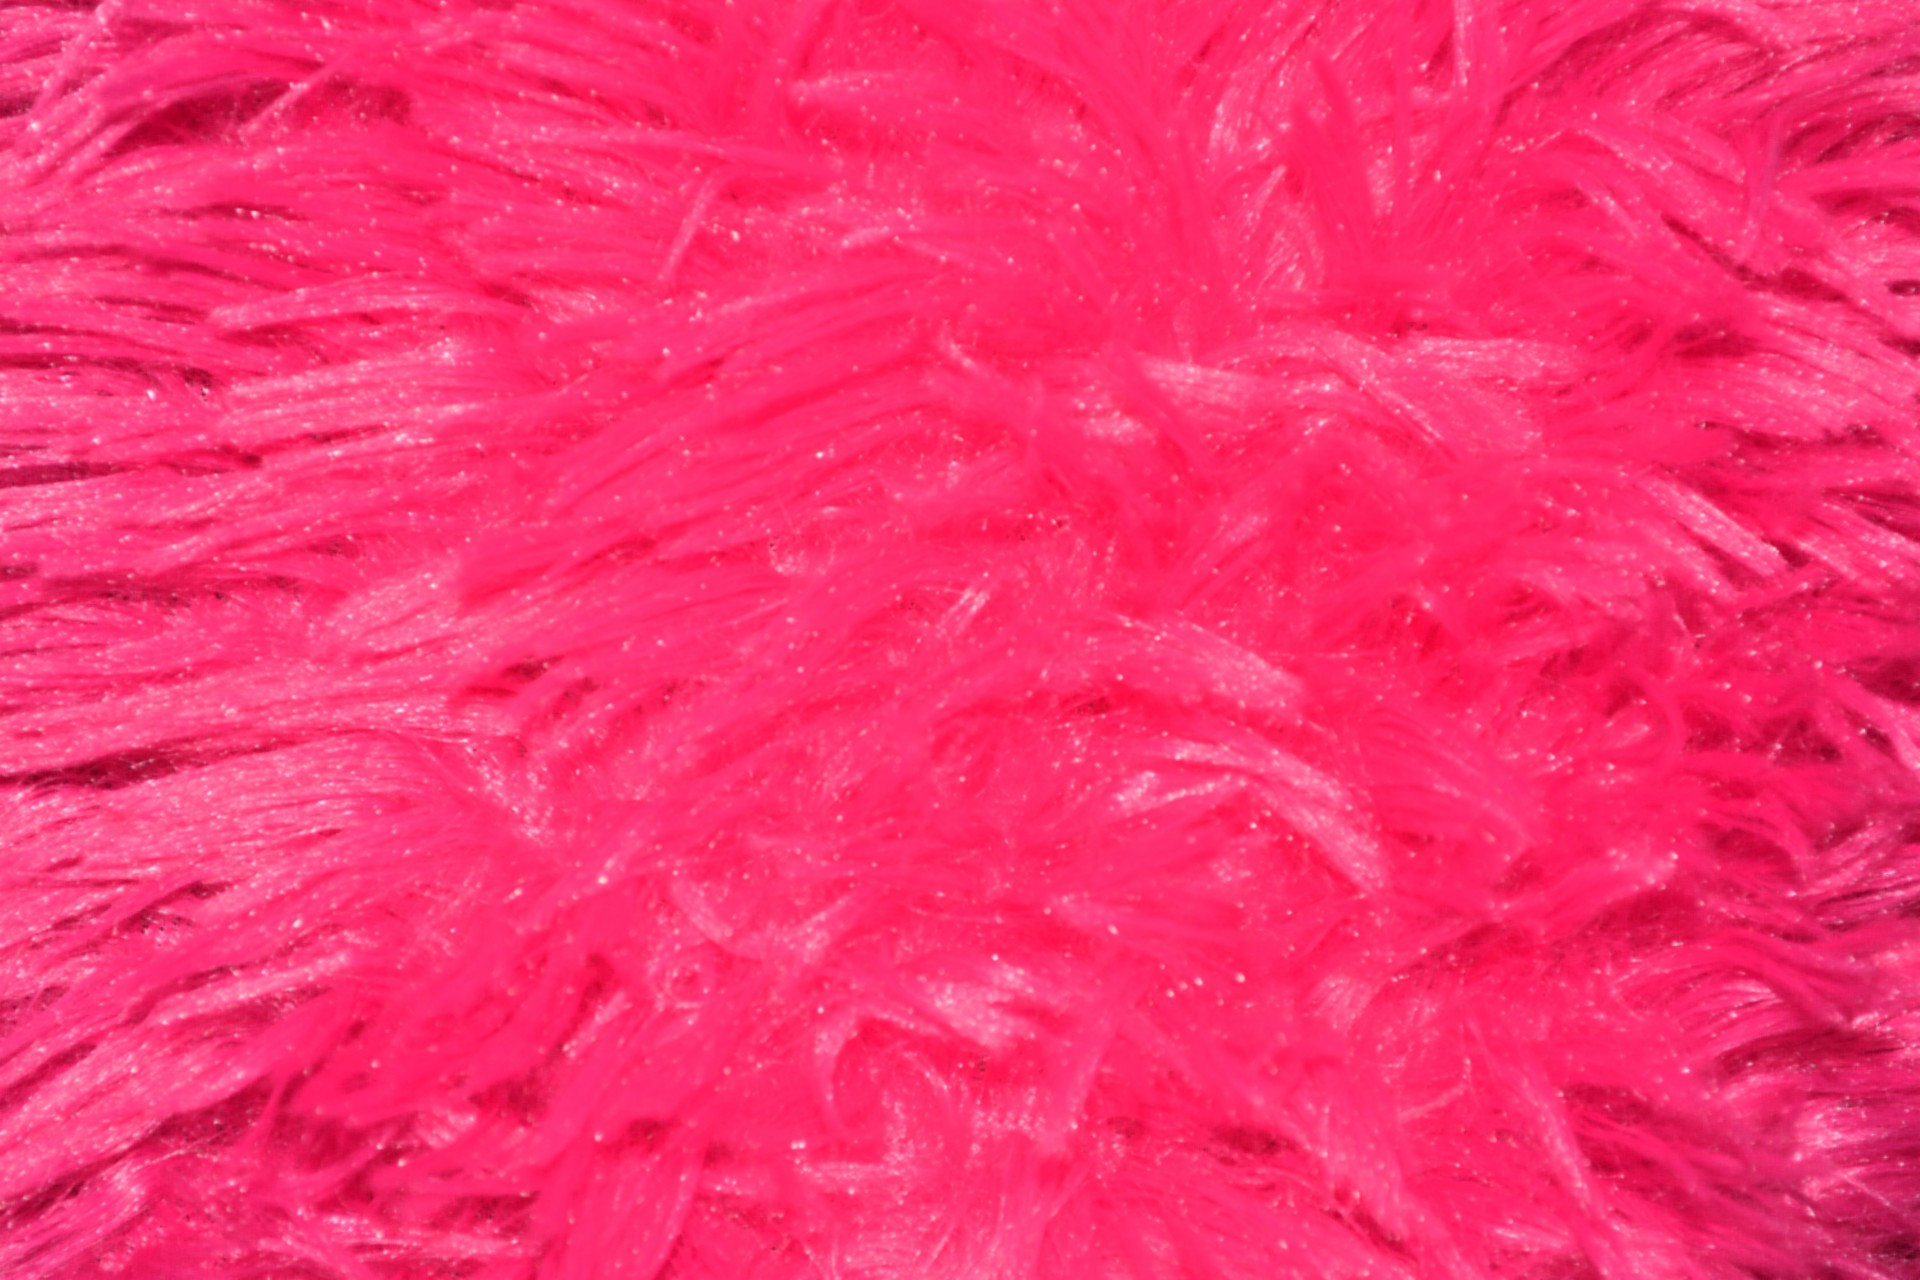 Pink Fur Colorful Background Nap Stock Photo HD   Public Domain 1920x1280